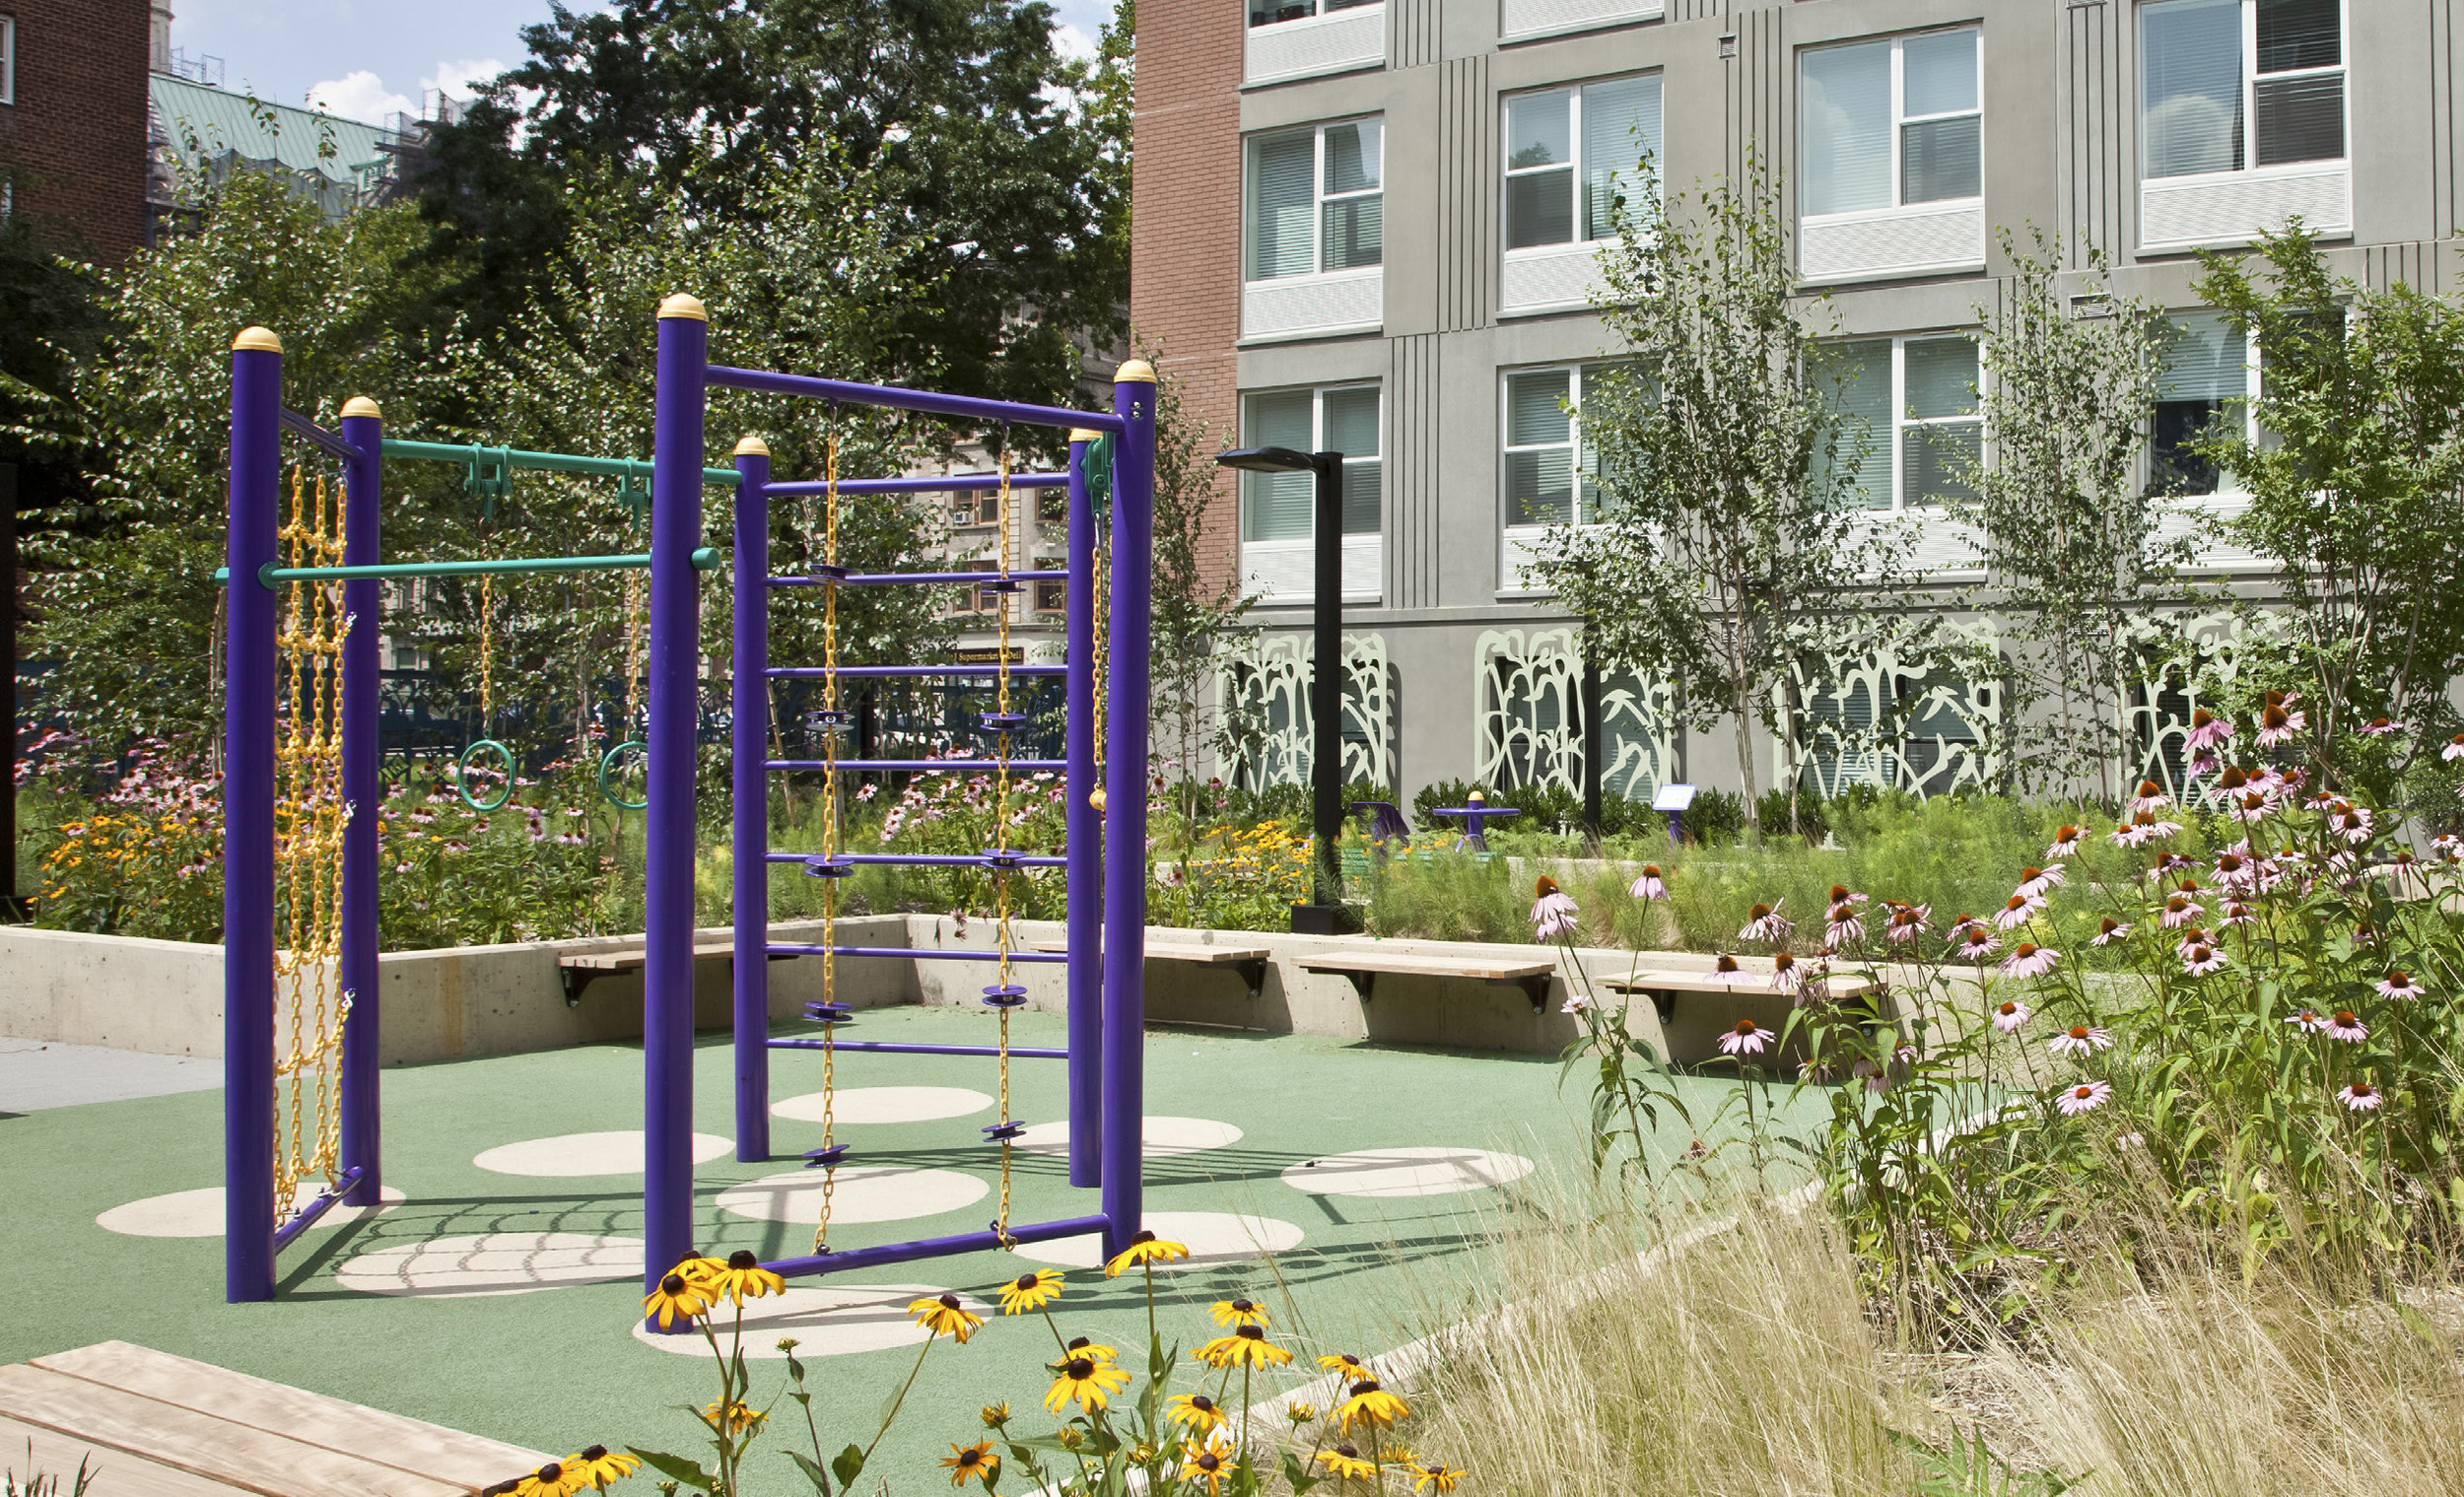 Policy Brief: Understanding the Impact of Active Design in Affordable Housing